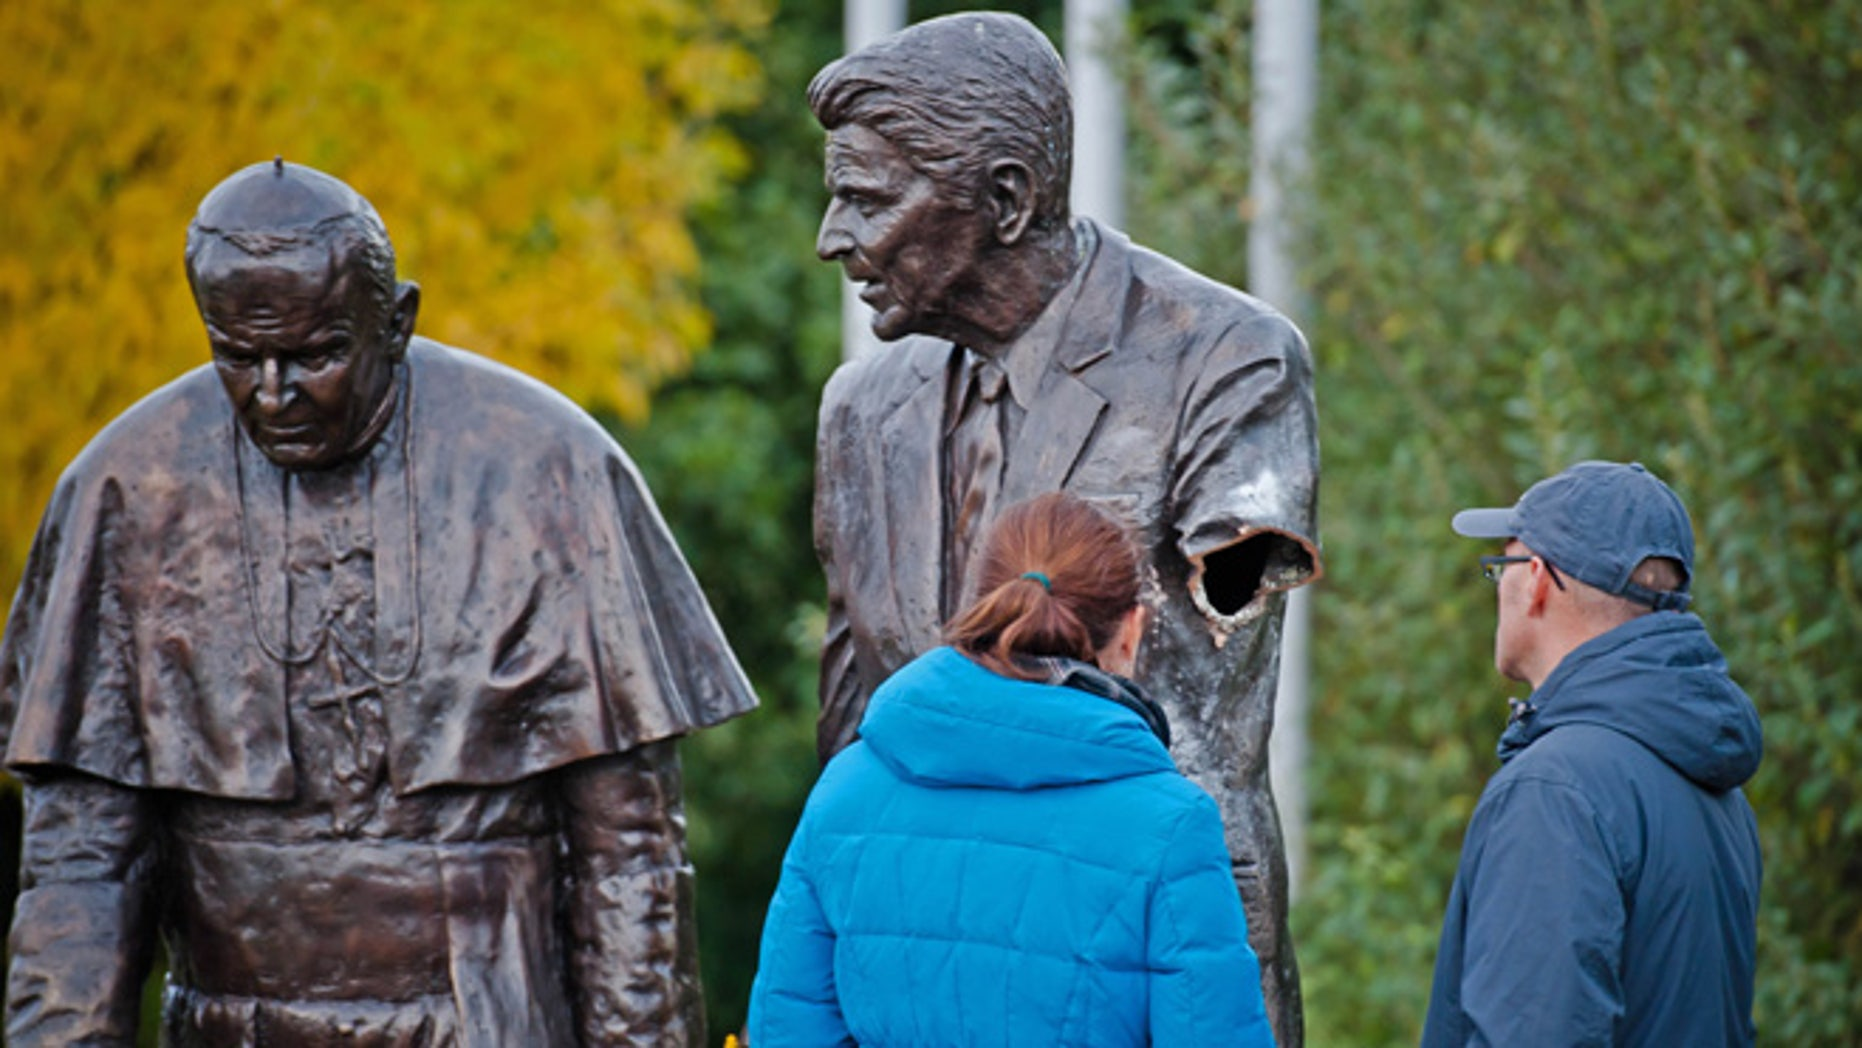 Oct. 1, 2013: Passersbys are seen looking at a former president Ronald Reagan statue with a severed arm in a park in Gdansk, Poland. The bronze statue is a larger than life rendering of Reagan and the Polish born Pope John Paul II, inspired by an AP photograph taken by Scott Stewart during John Paul's visit to the US in 1987 and honors Reagan's support for Poland's struggle to end communism. The police are searching for the vandal who cut the arm off.